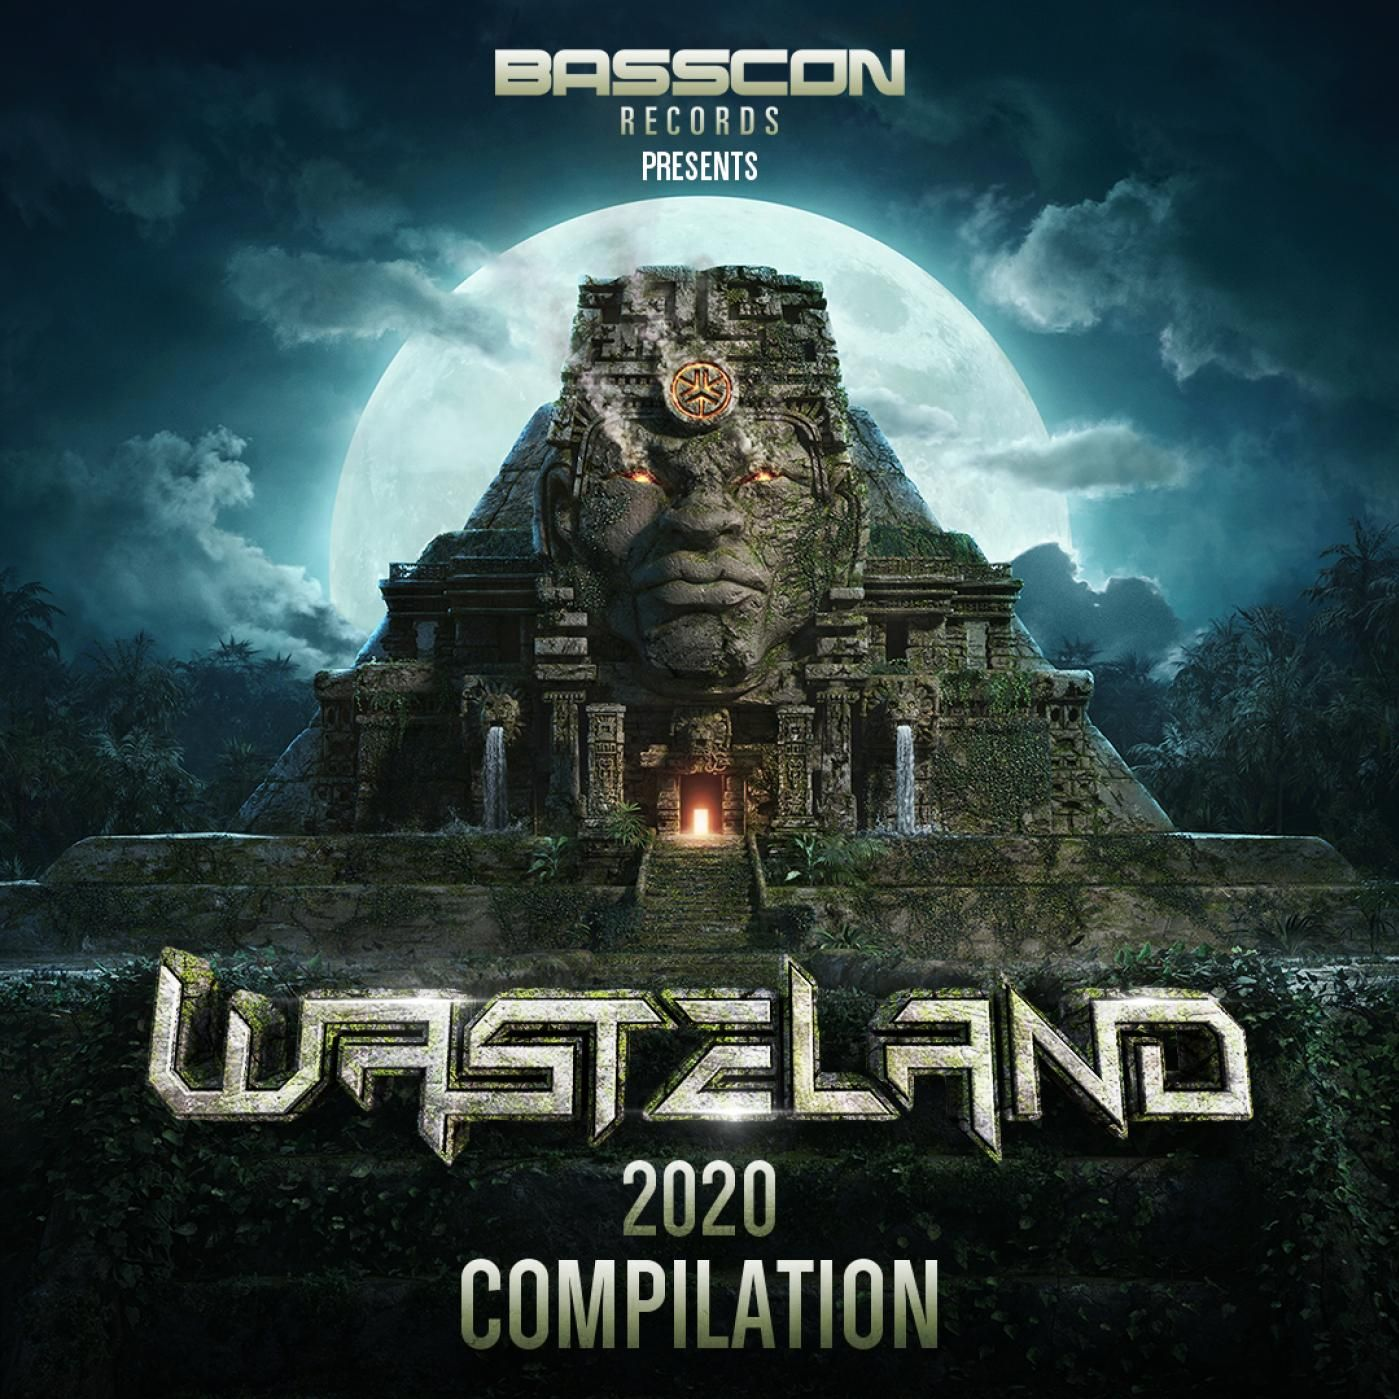 Basscon Records Presents Wasteland 2020